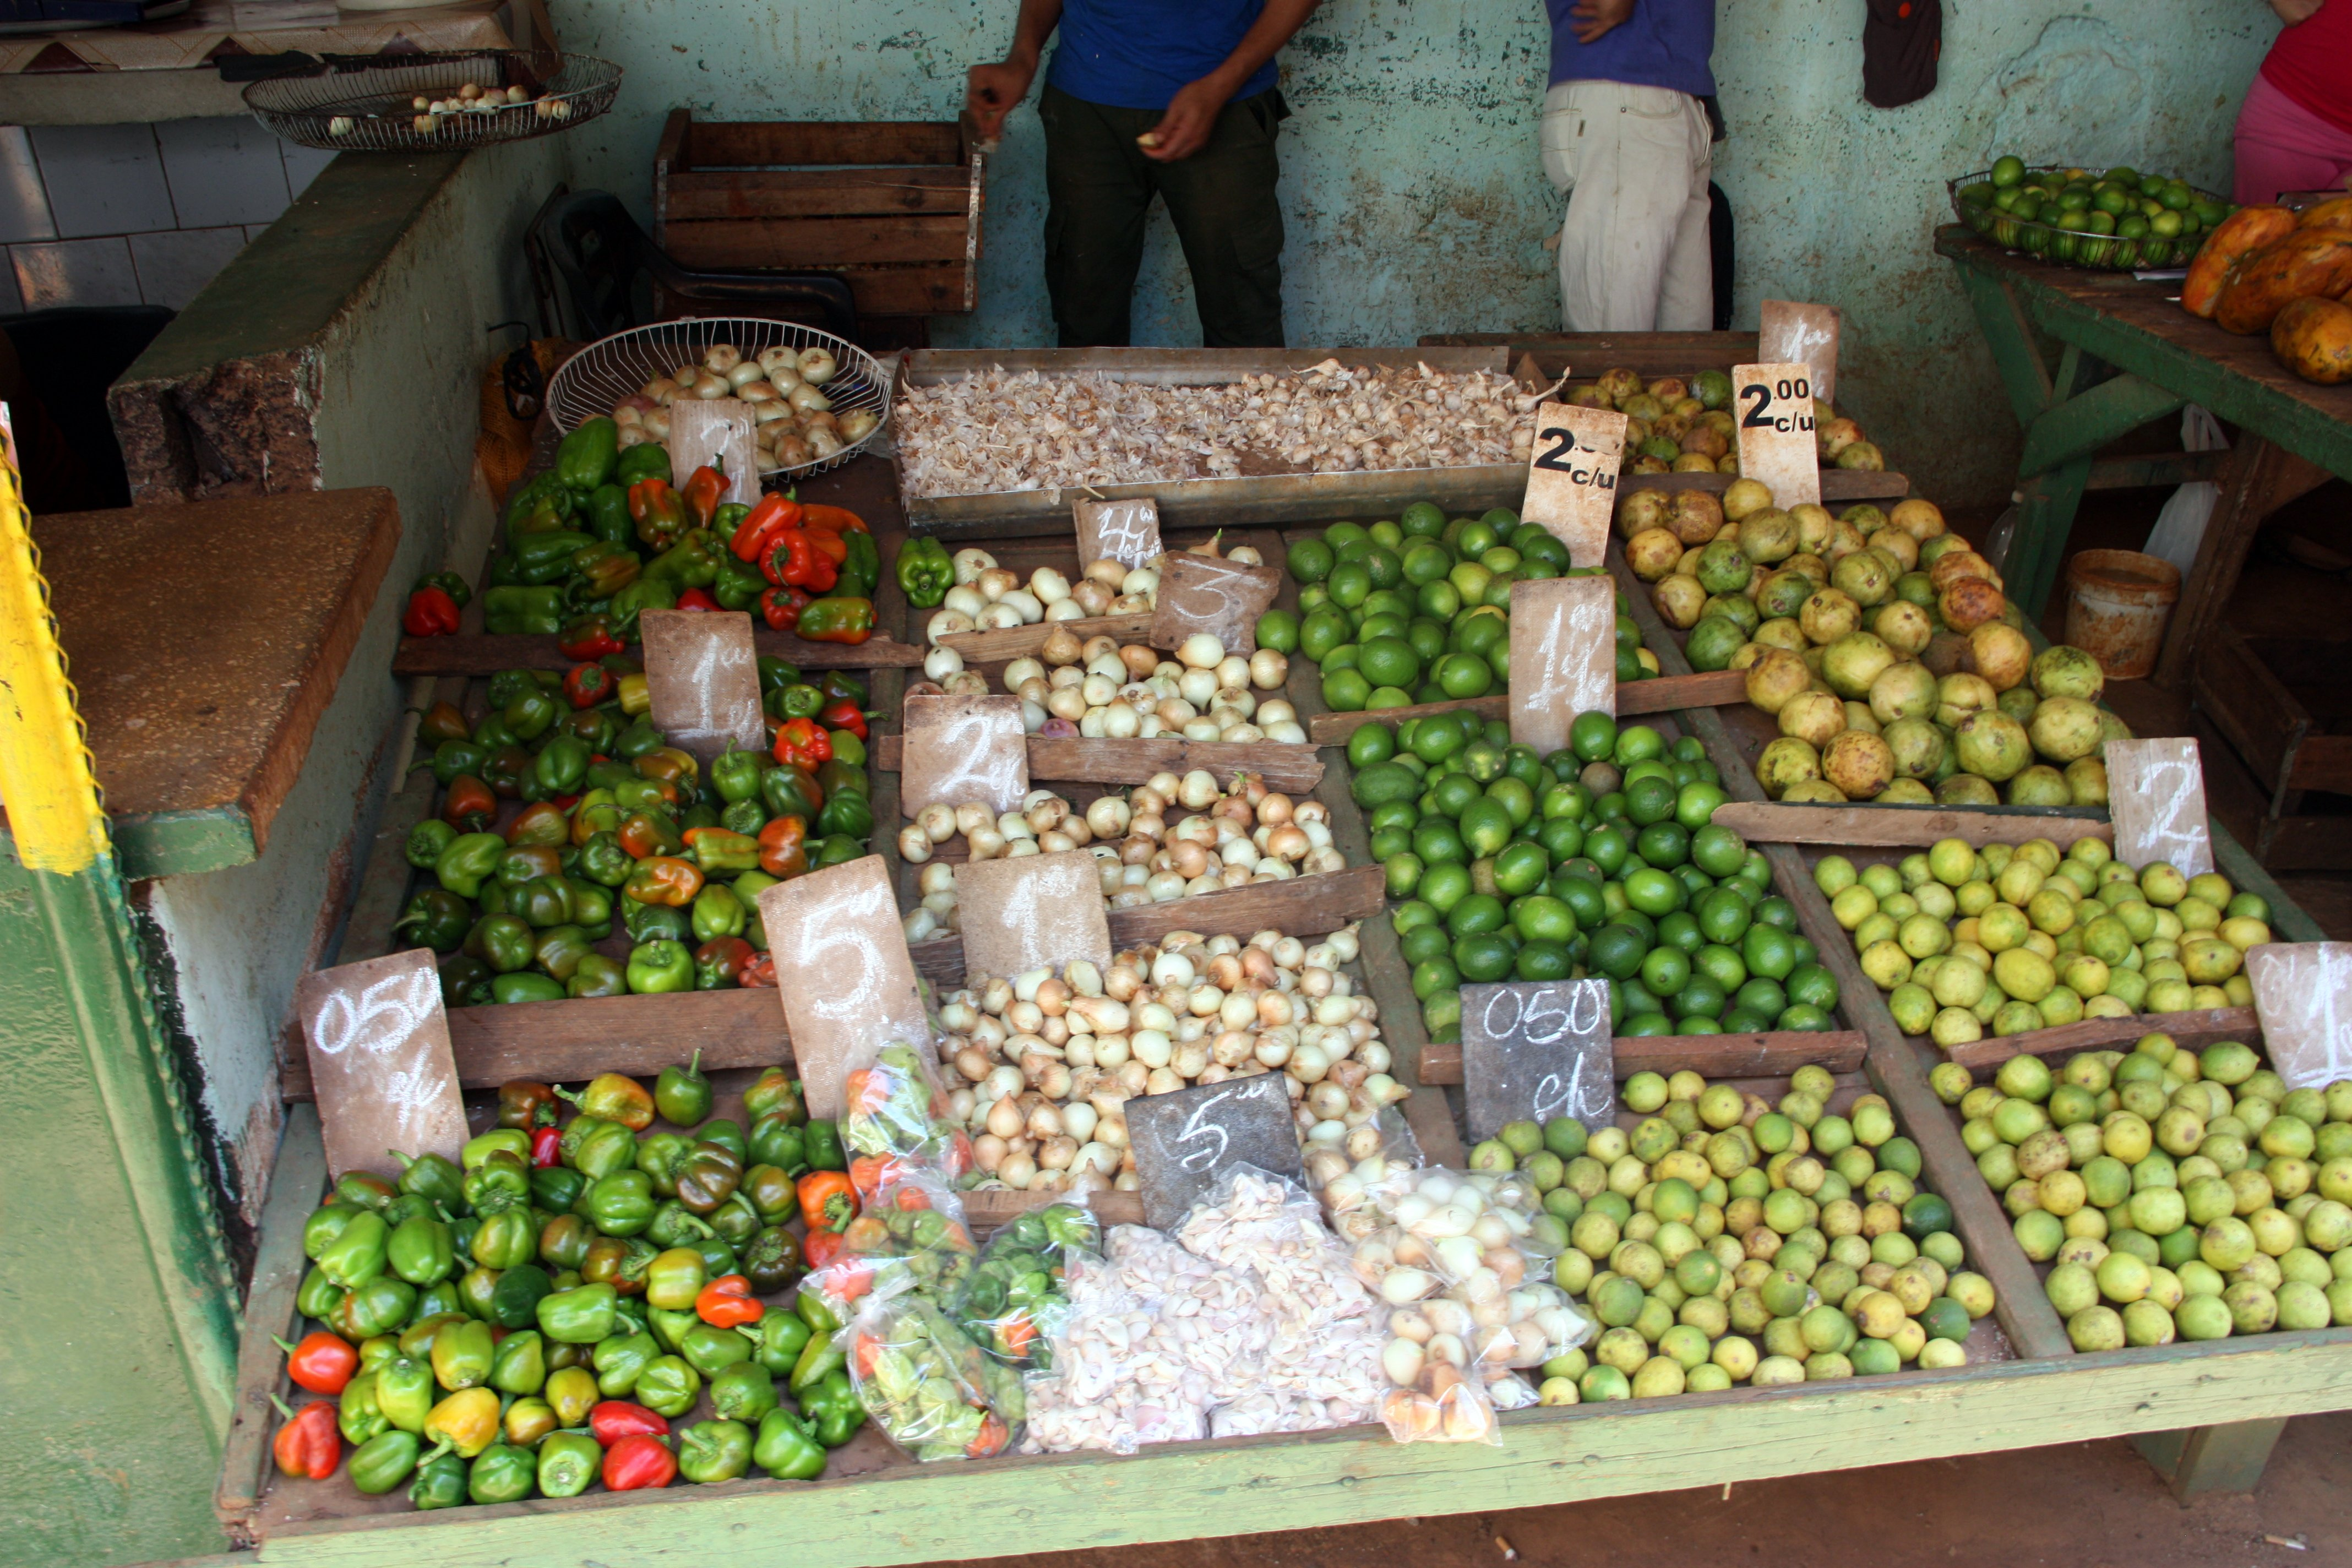 Typical food at the market in Cuba.  Prices are in Pesos which are worth about $0.04 each.